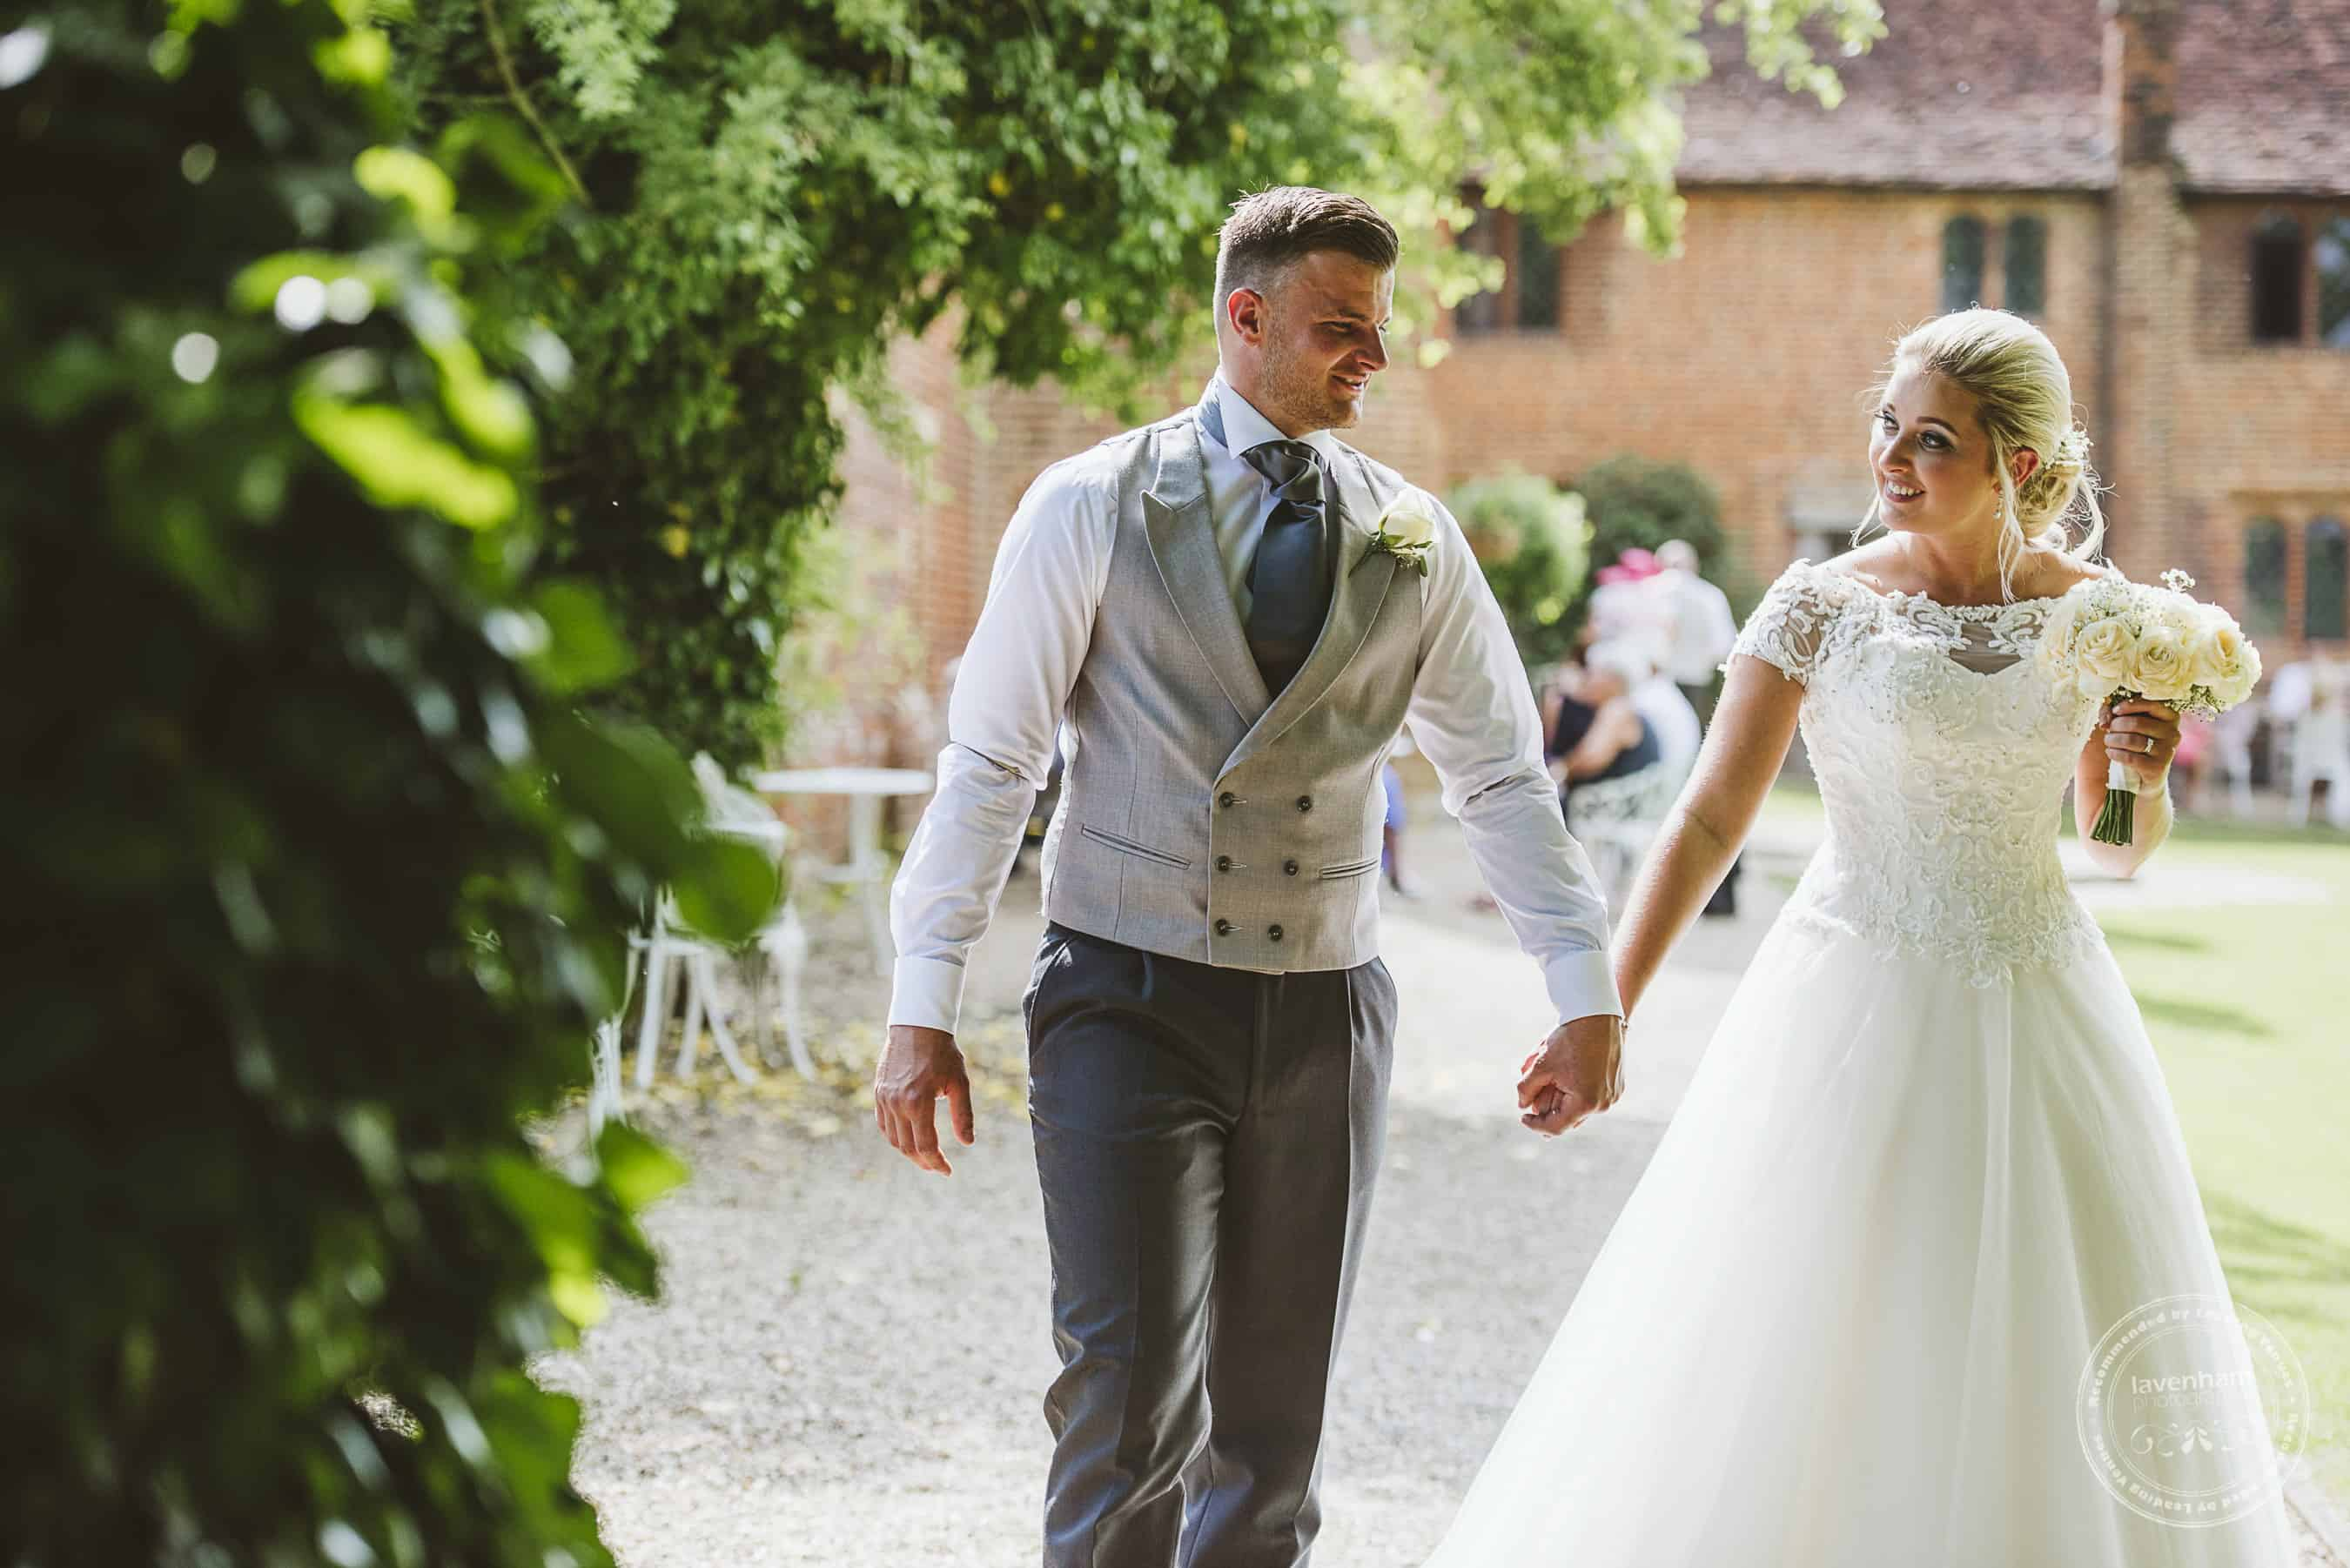 030618 Leez Priory Wedding Photography Lavenham Photographic 067